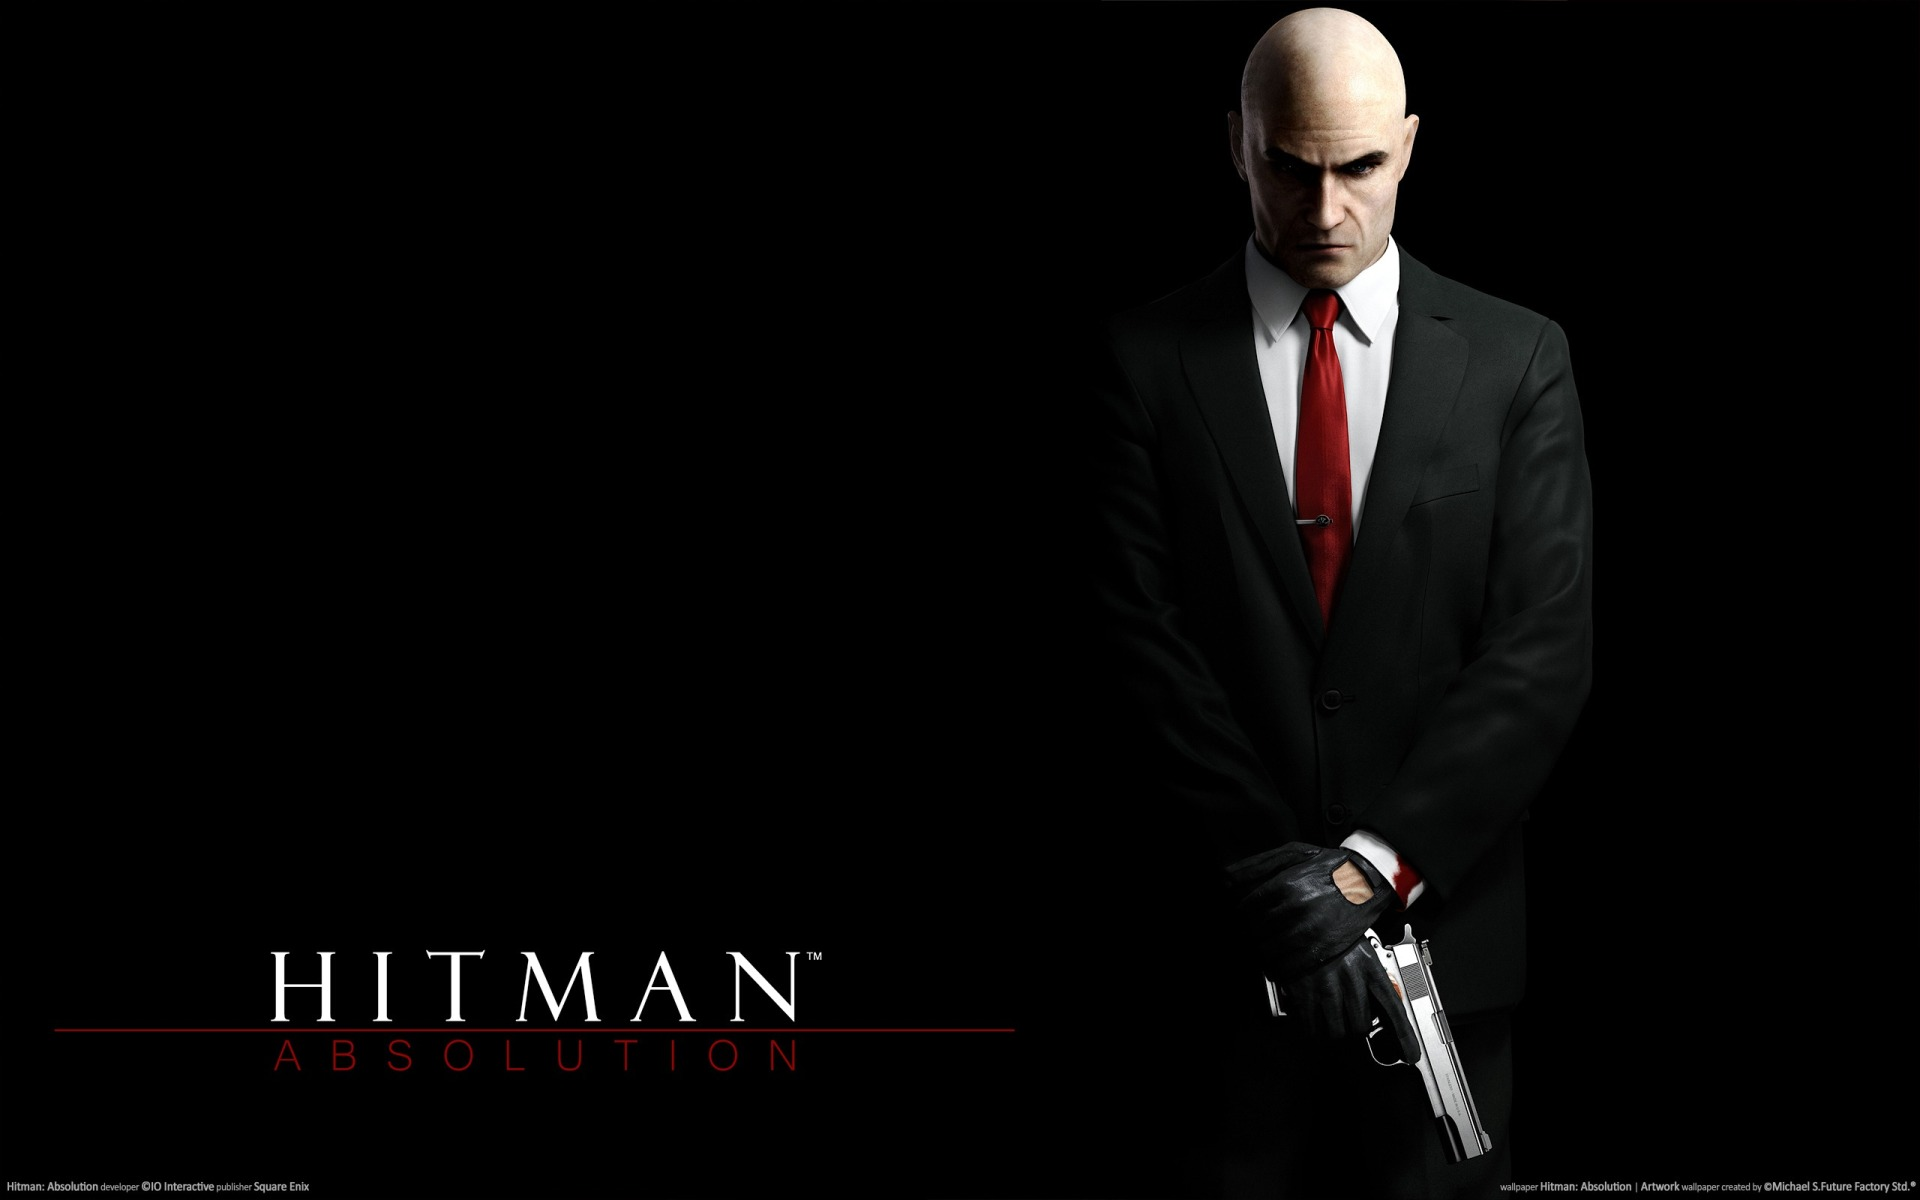 Top 2016 Wallpapers Pack: p 12 Widescreen Images of Hitman